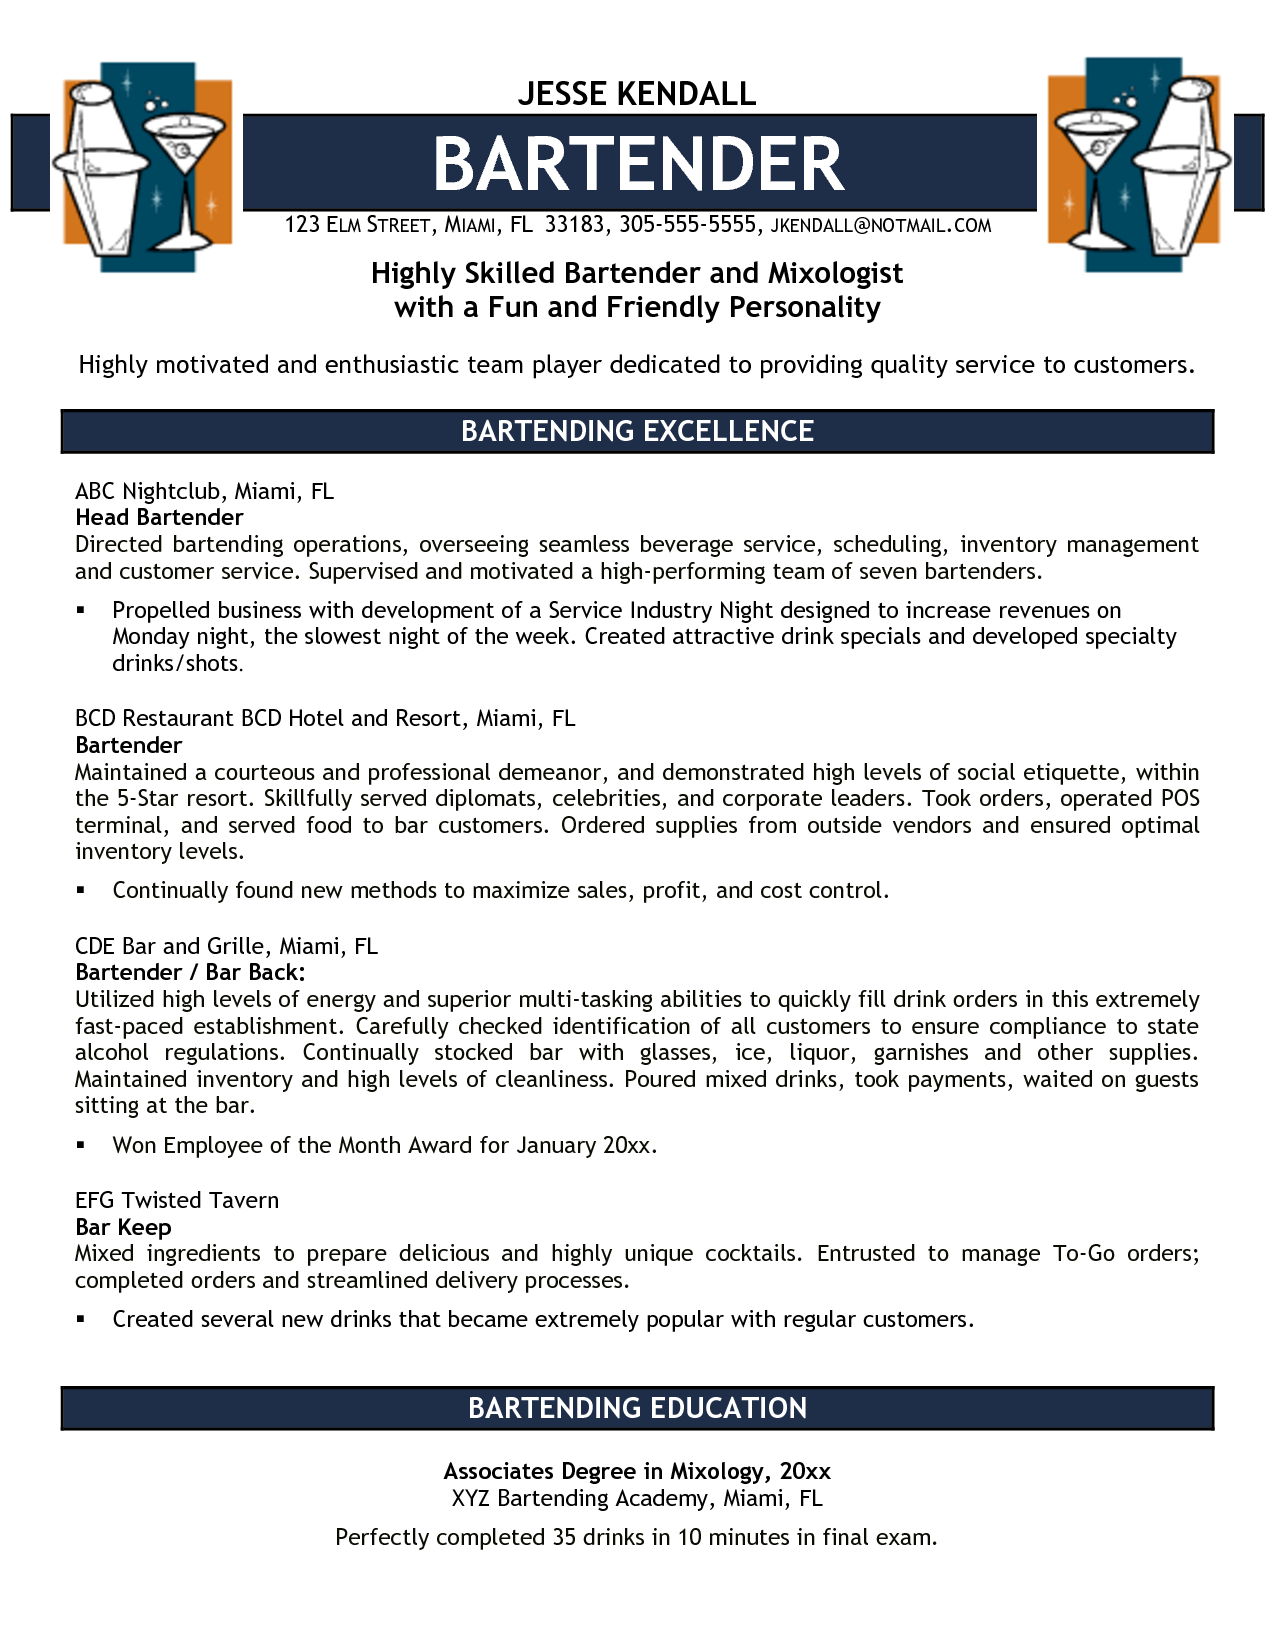 resume Resume Personality sample resume bartender embeded linux engineer cover letter example template learnhowtoloseweight net with highly skilled and mixologist a fun friendly